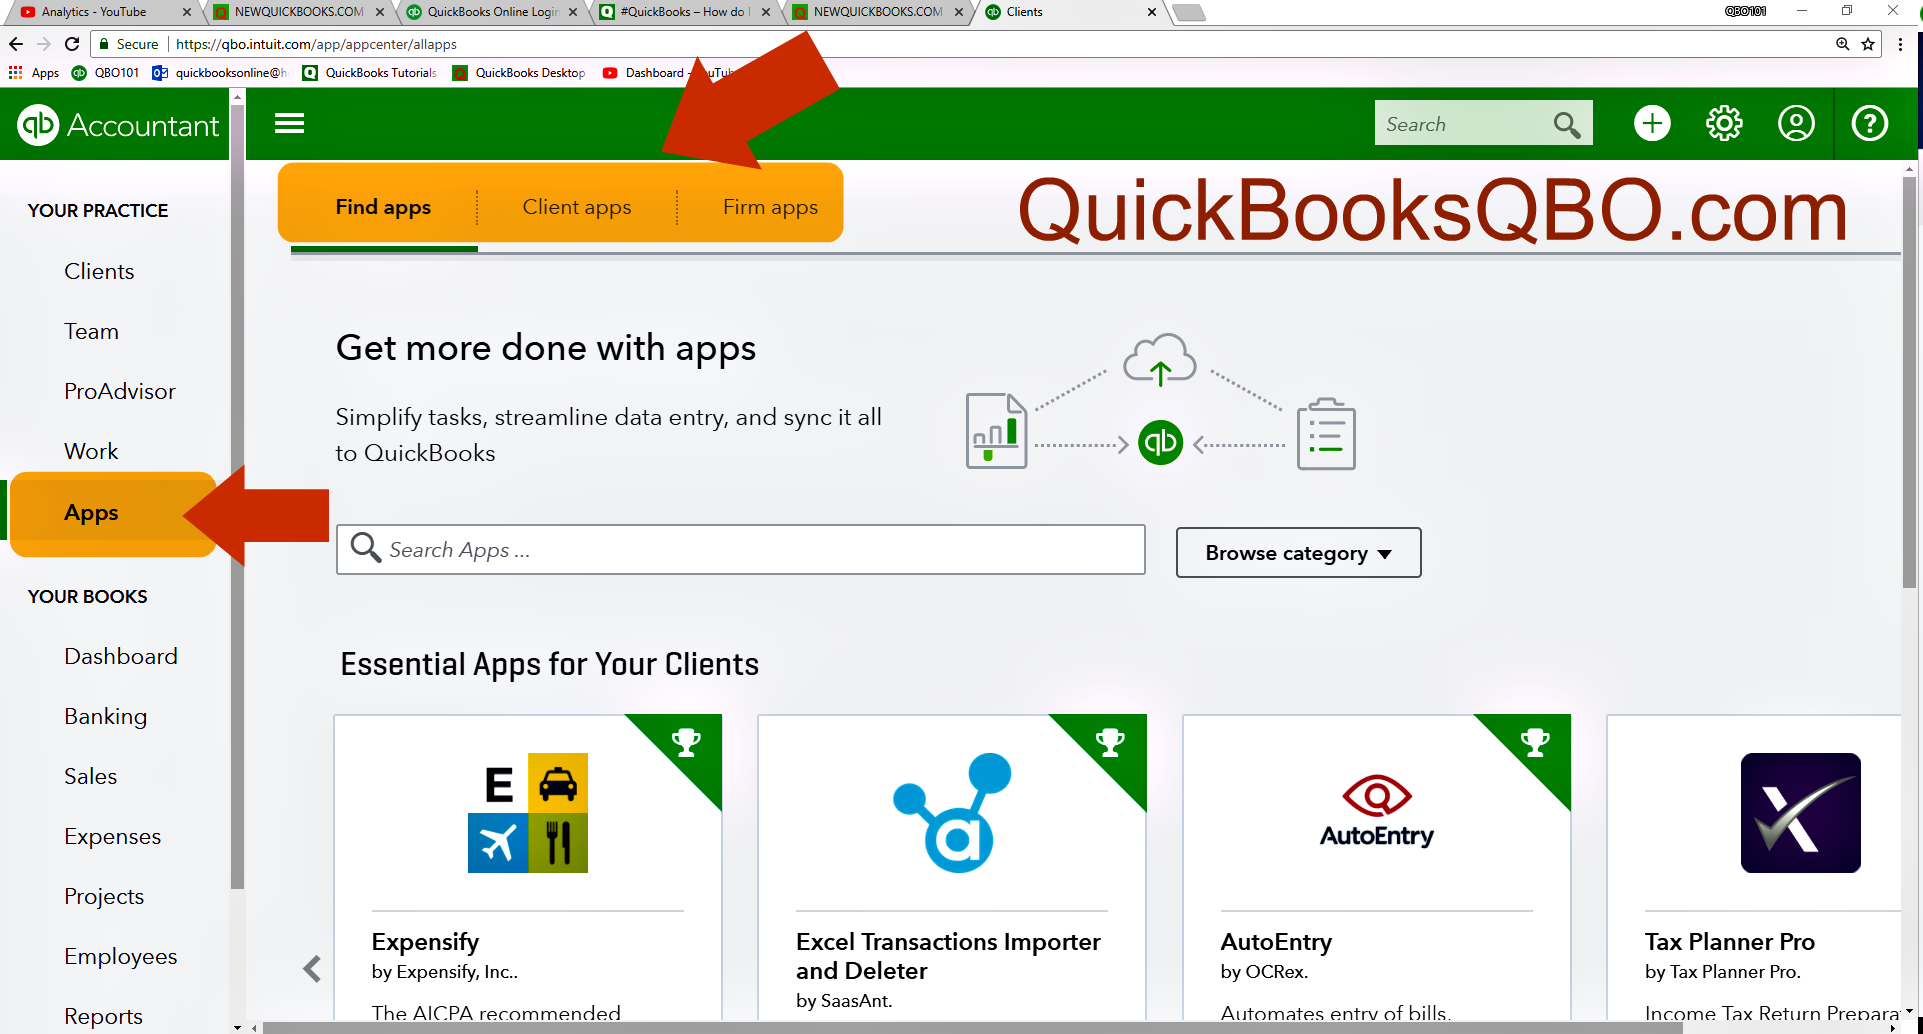 Apps tab in QuickBooks Online Accountant QBOA | NEWQBO COM